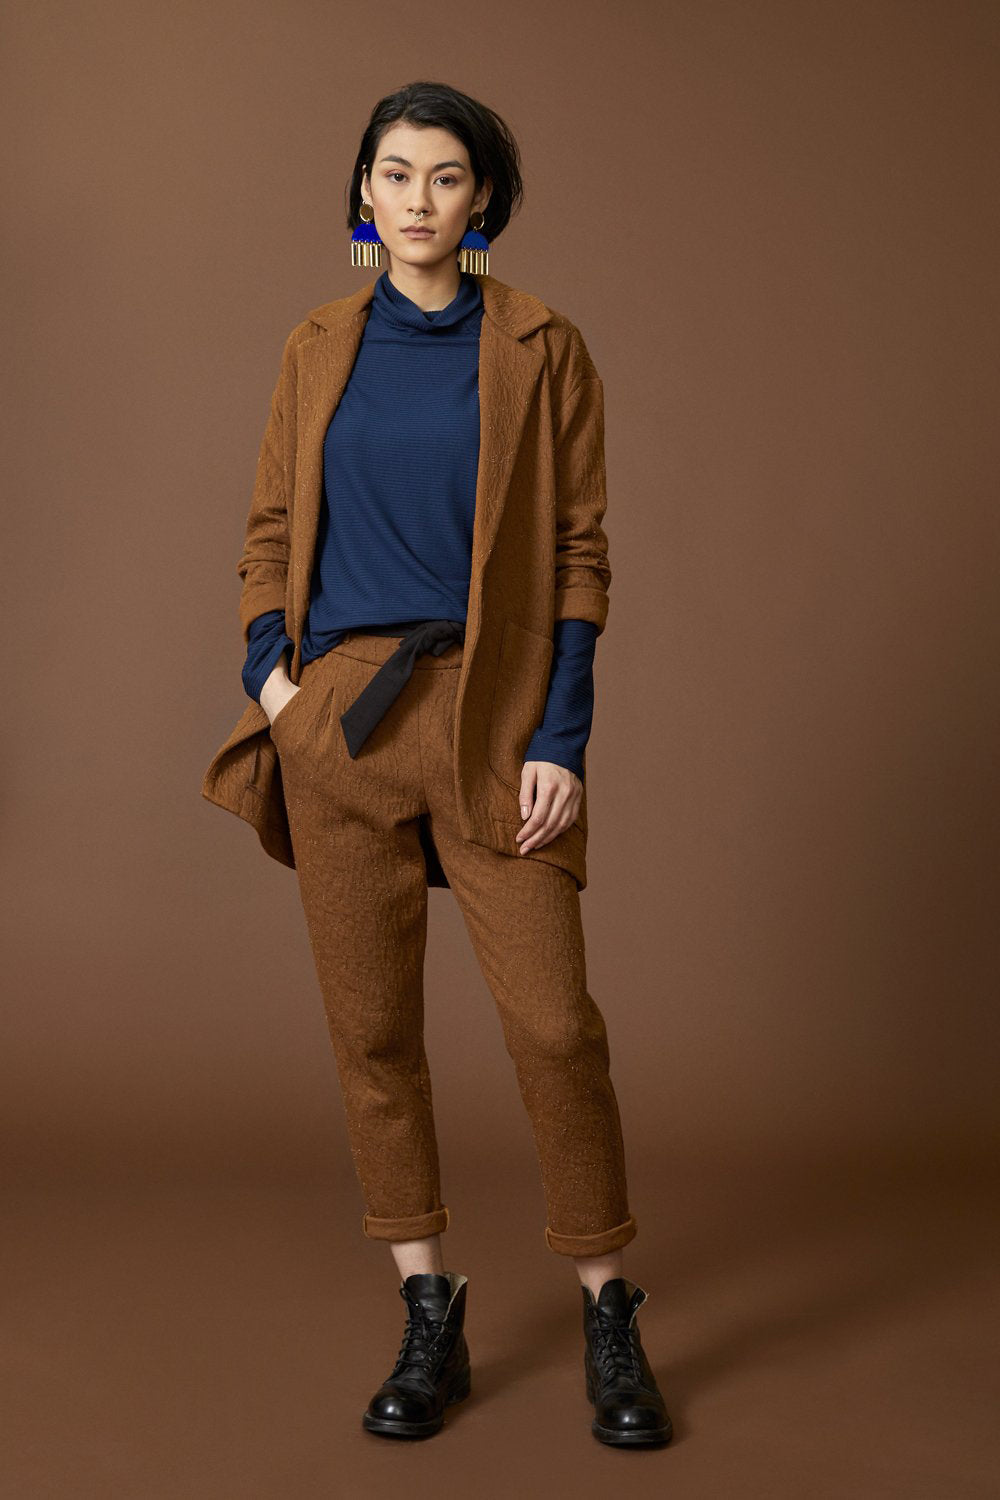 Abell jacket by Cokluch; blazer-like; thick cinnamon crinkle material; large pockets; single button closure; full-length front view; paired with matching pants, a cobalt blue top, and black lace-up boots